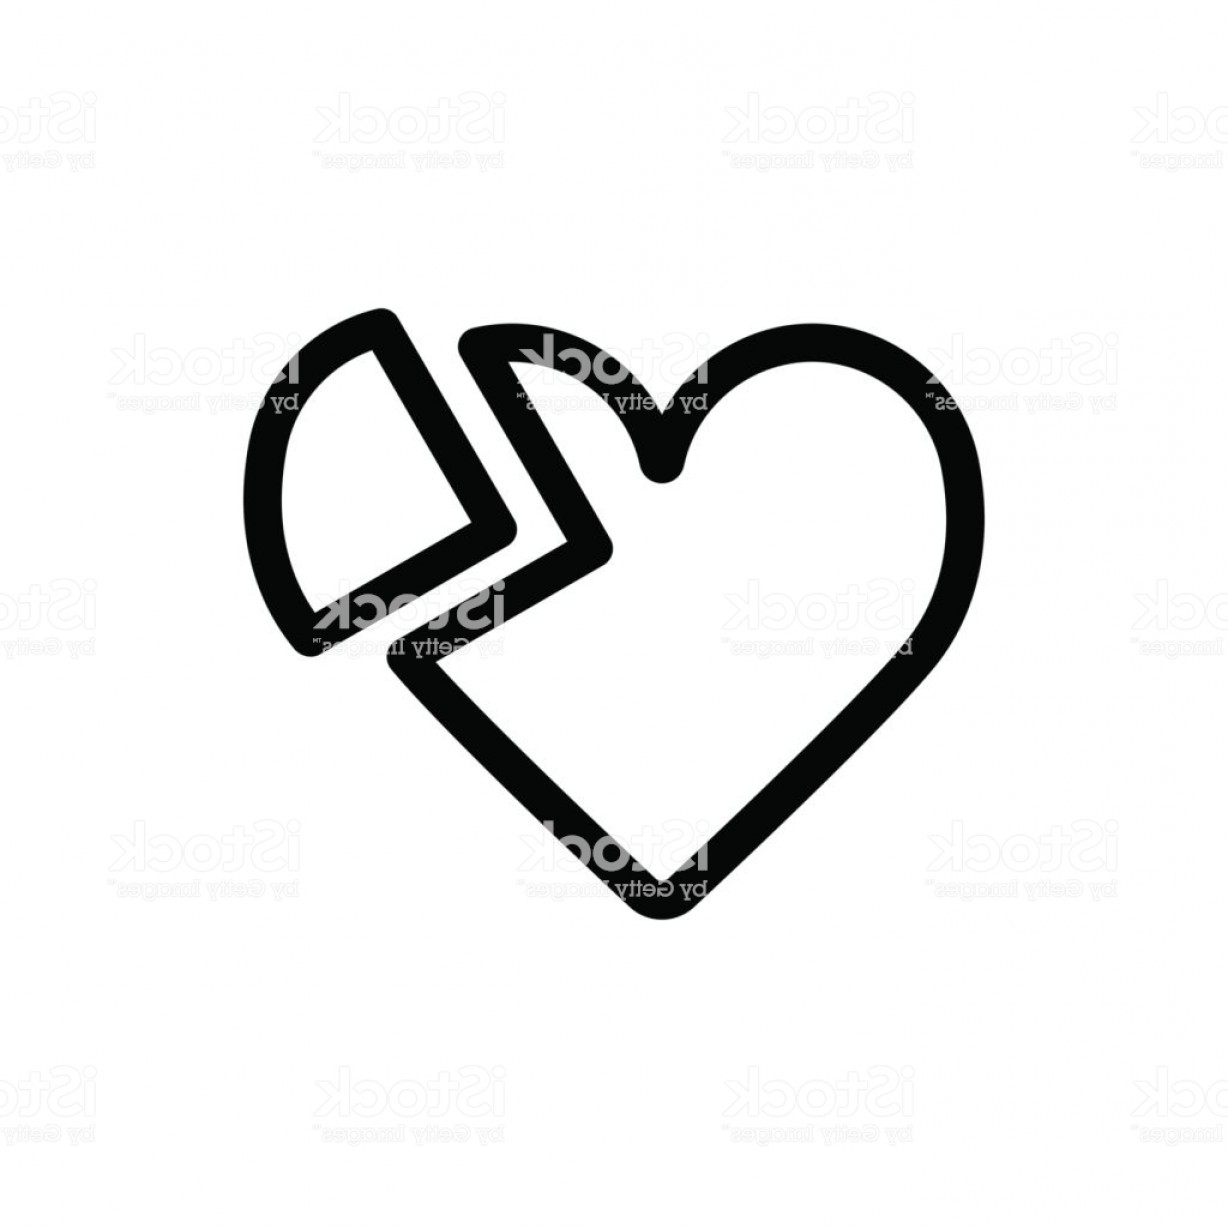 1228x1228 Black And White Heart Vector Graphic Orangiausa